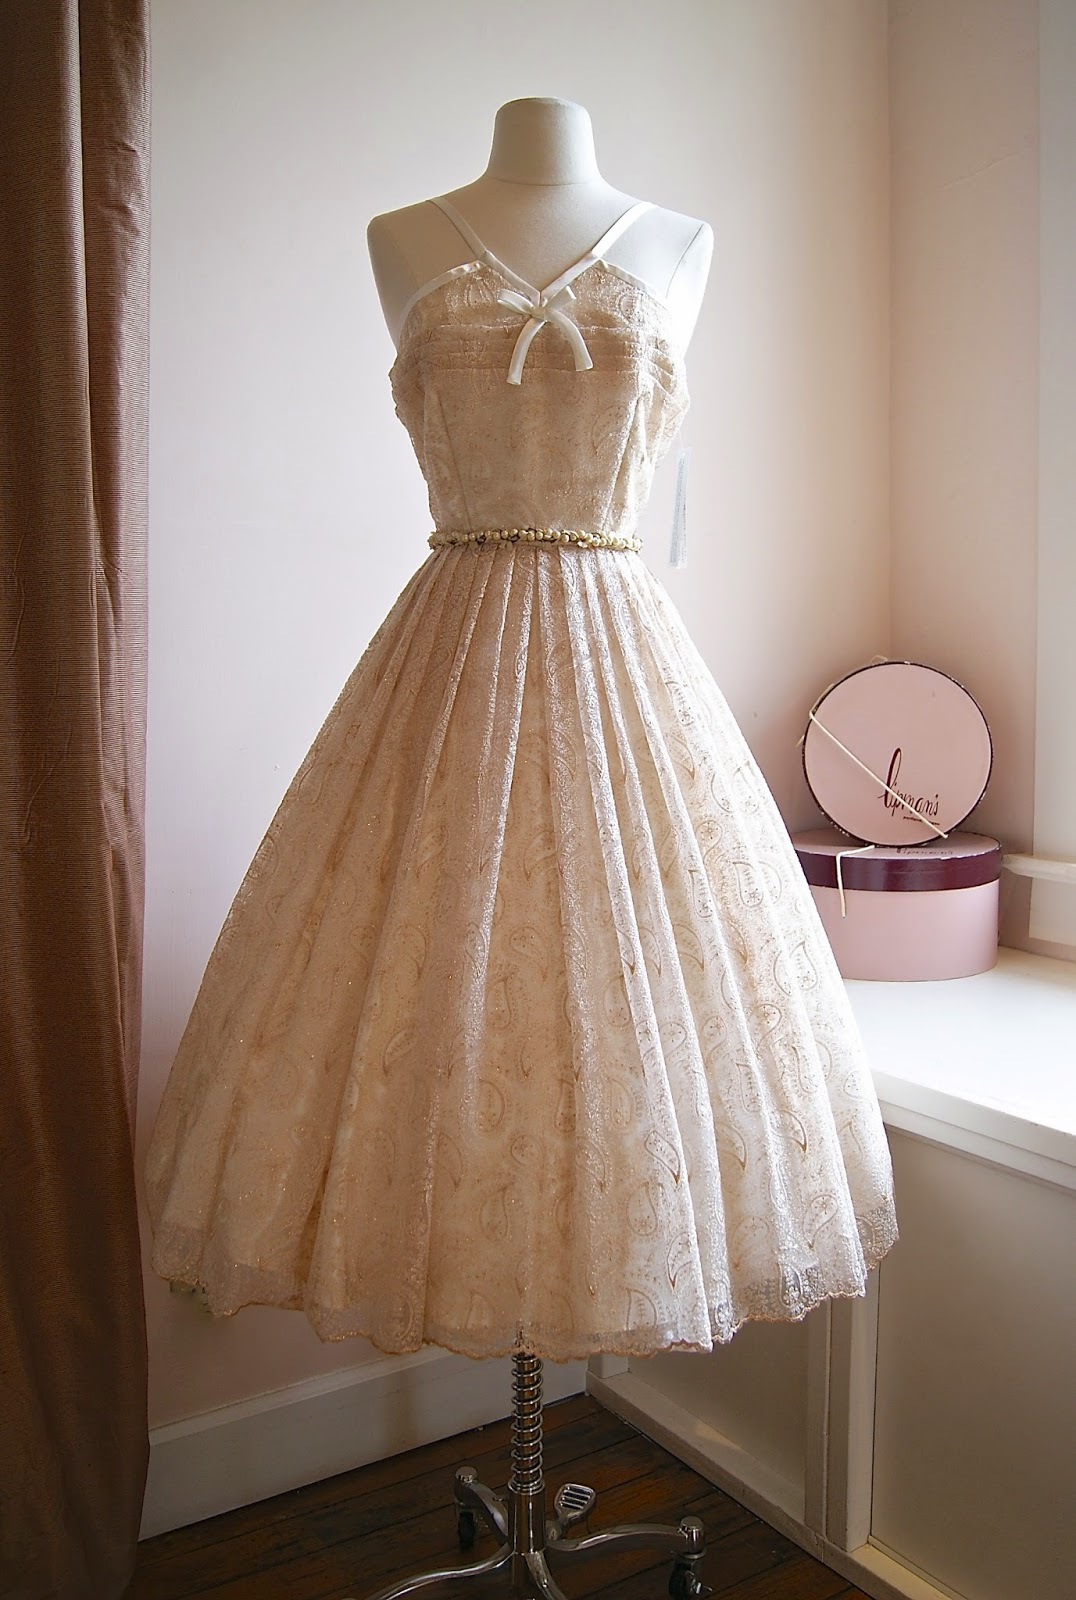 Vintage Style Wedding Dresses Portland : Xtabay vintage clothing boutique portland oregon fall